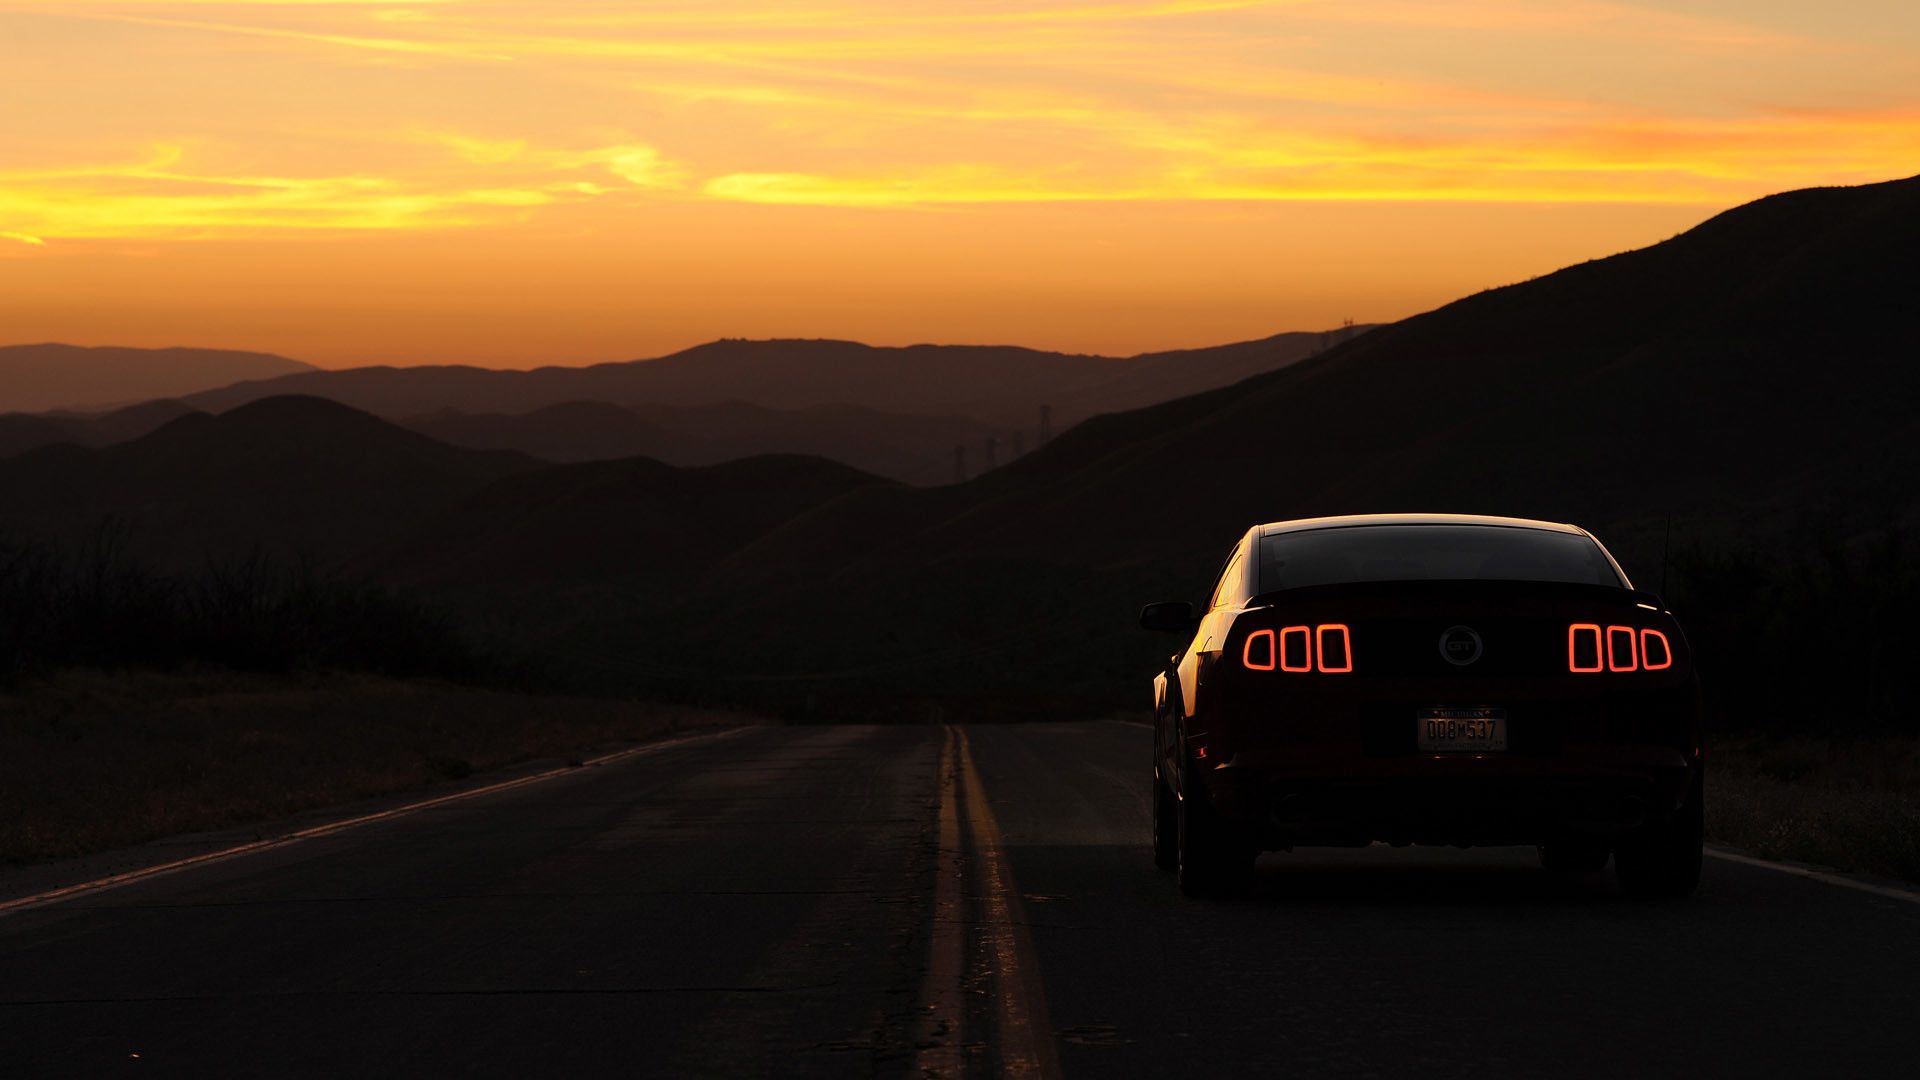 Res 1920x1080 Evening Drive Ford Mustang Wallpaper Met